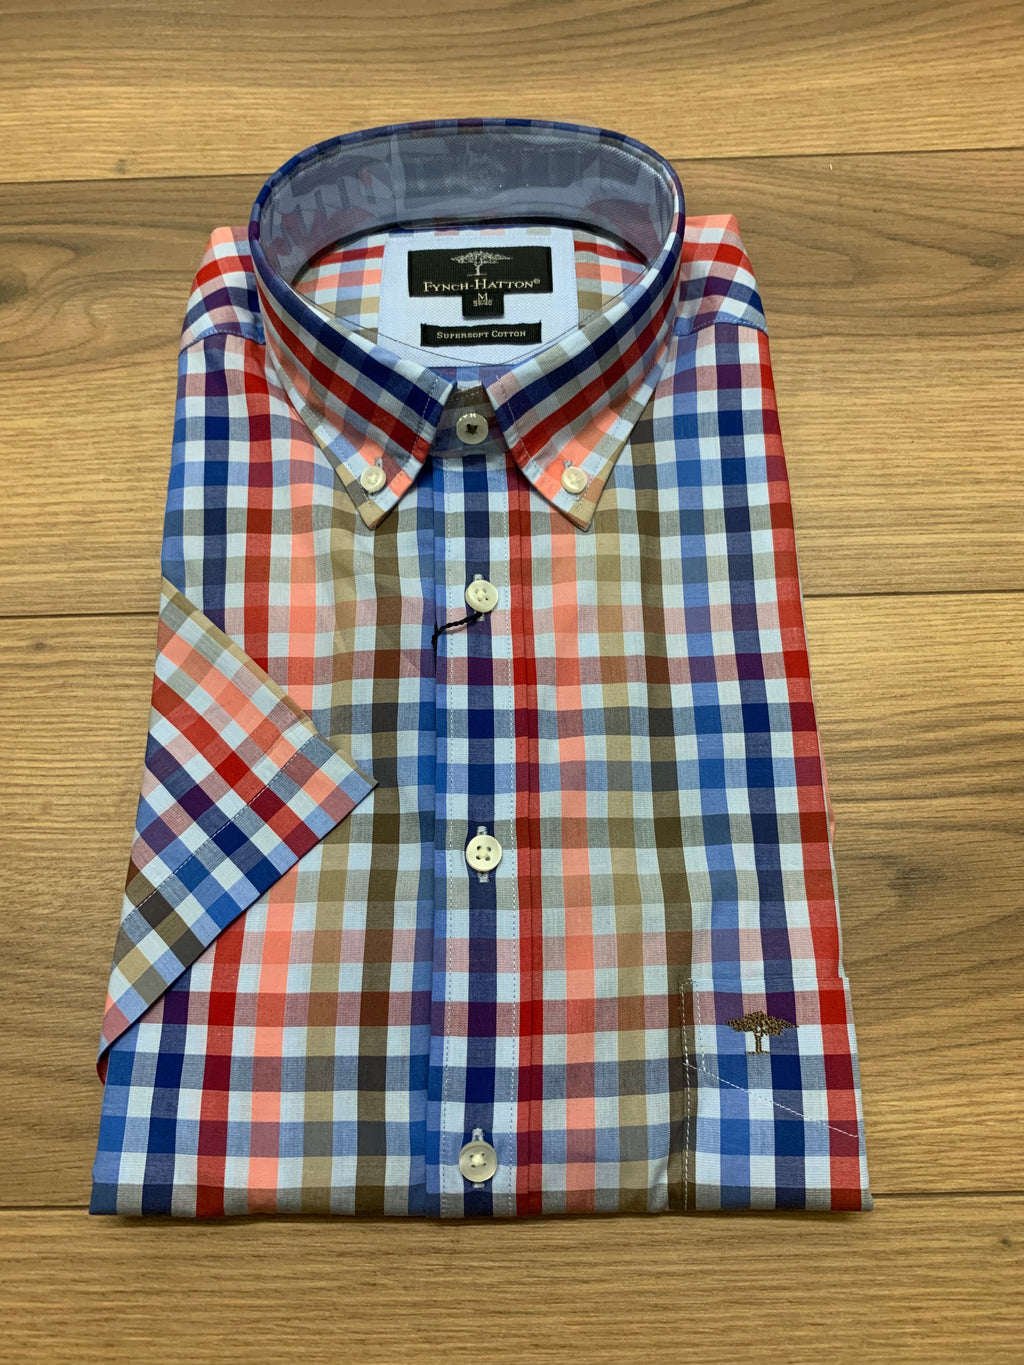 Fynch Hatton 1/2 Sleeve Check Shirt - Coral Blue - jjdonnelly